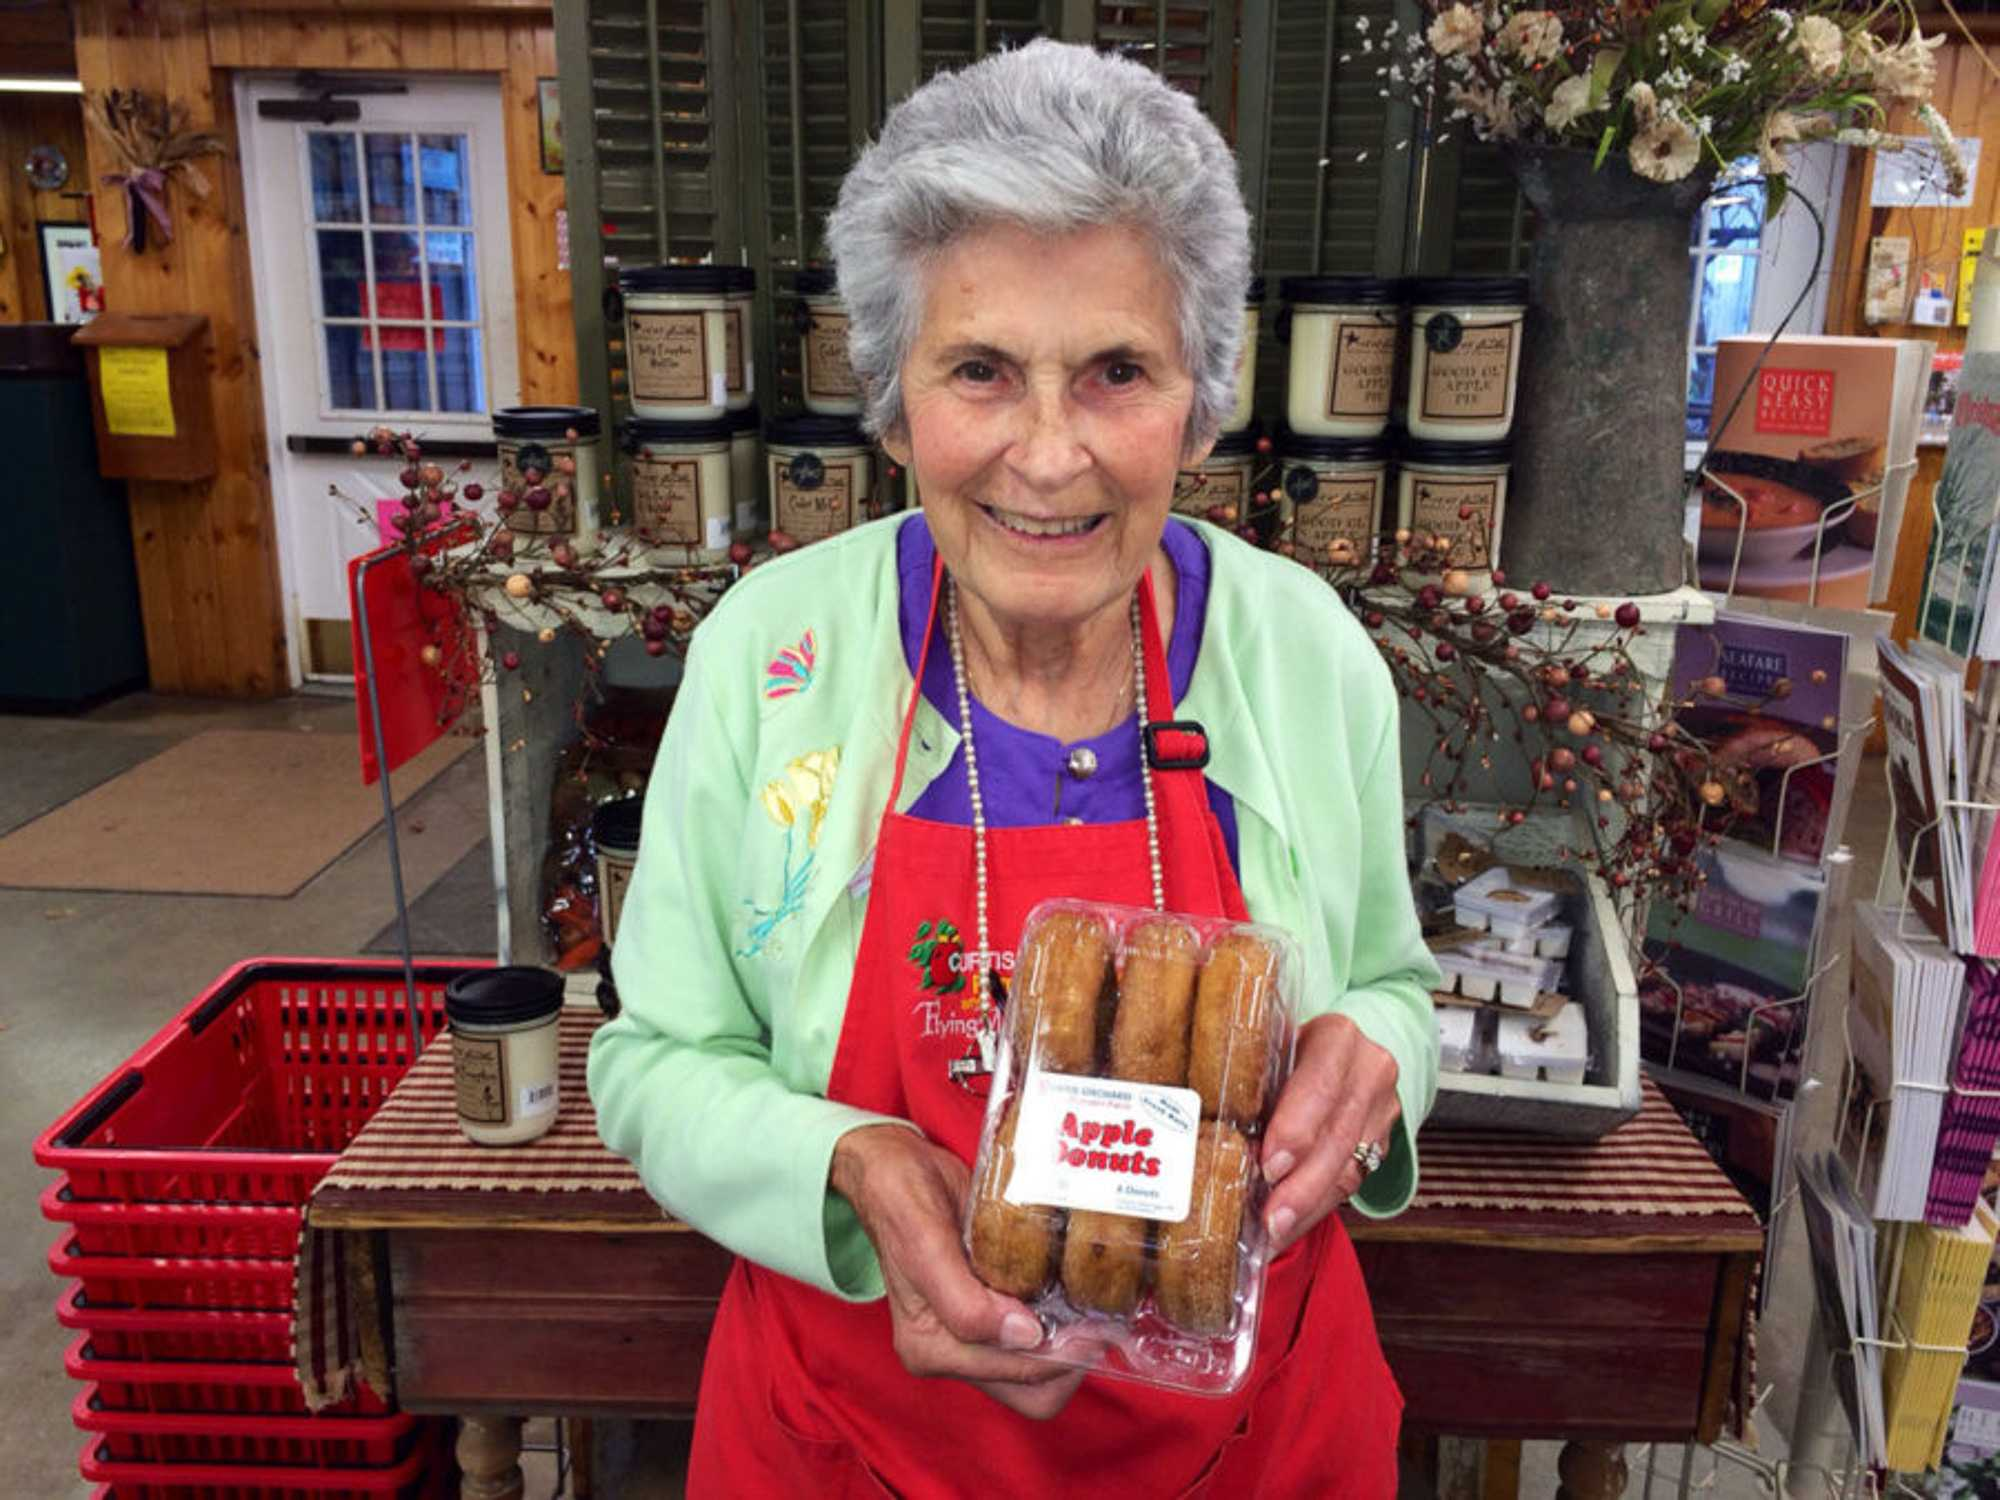 Joyce Curtis stands in the shop, holding a box of apple donuts. Curtis was a mainstay in the C-U community.